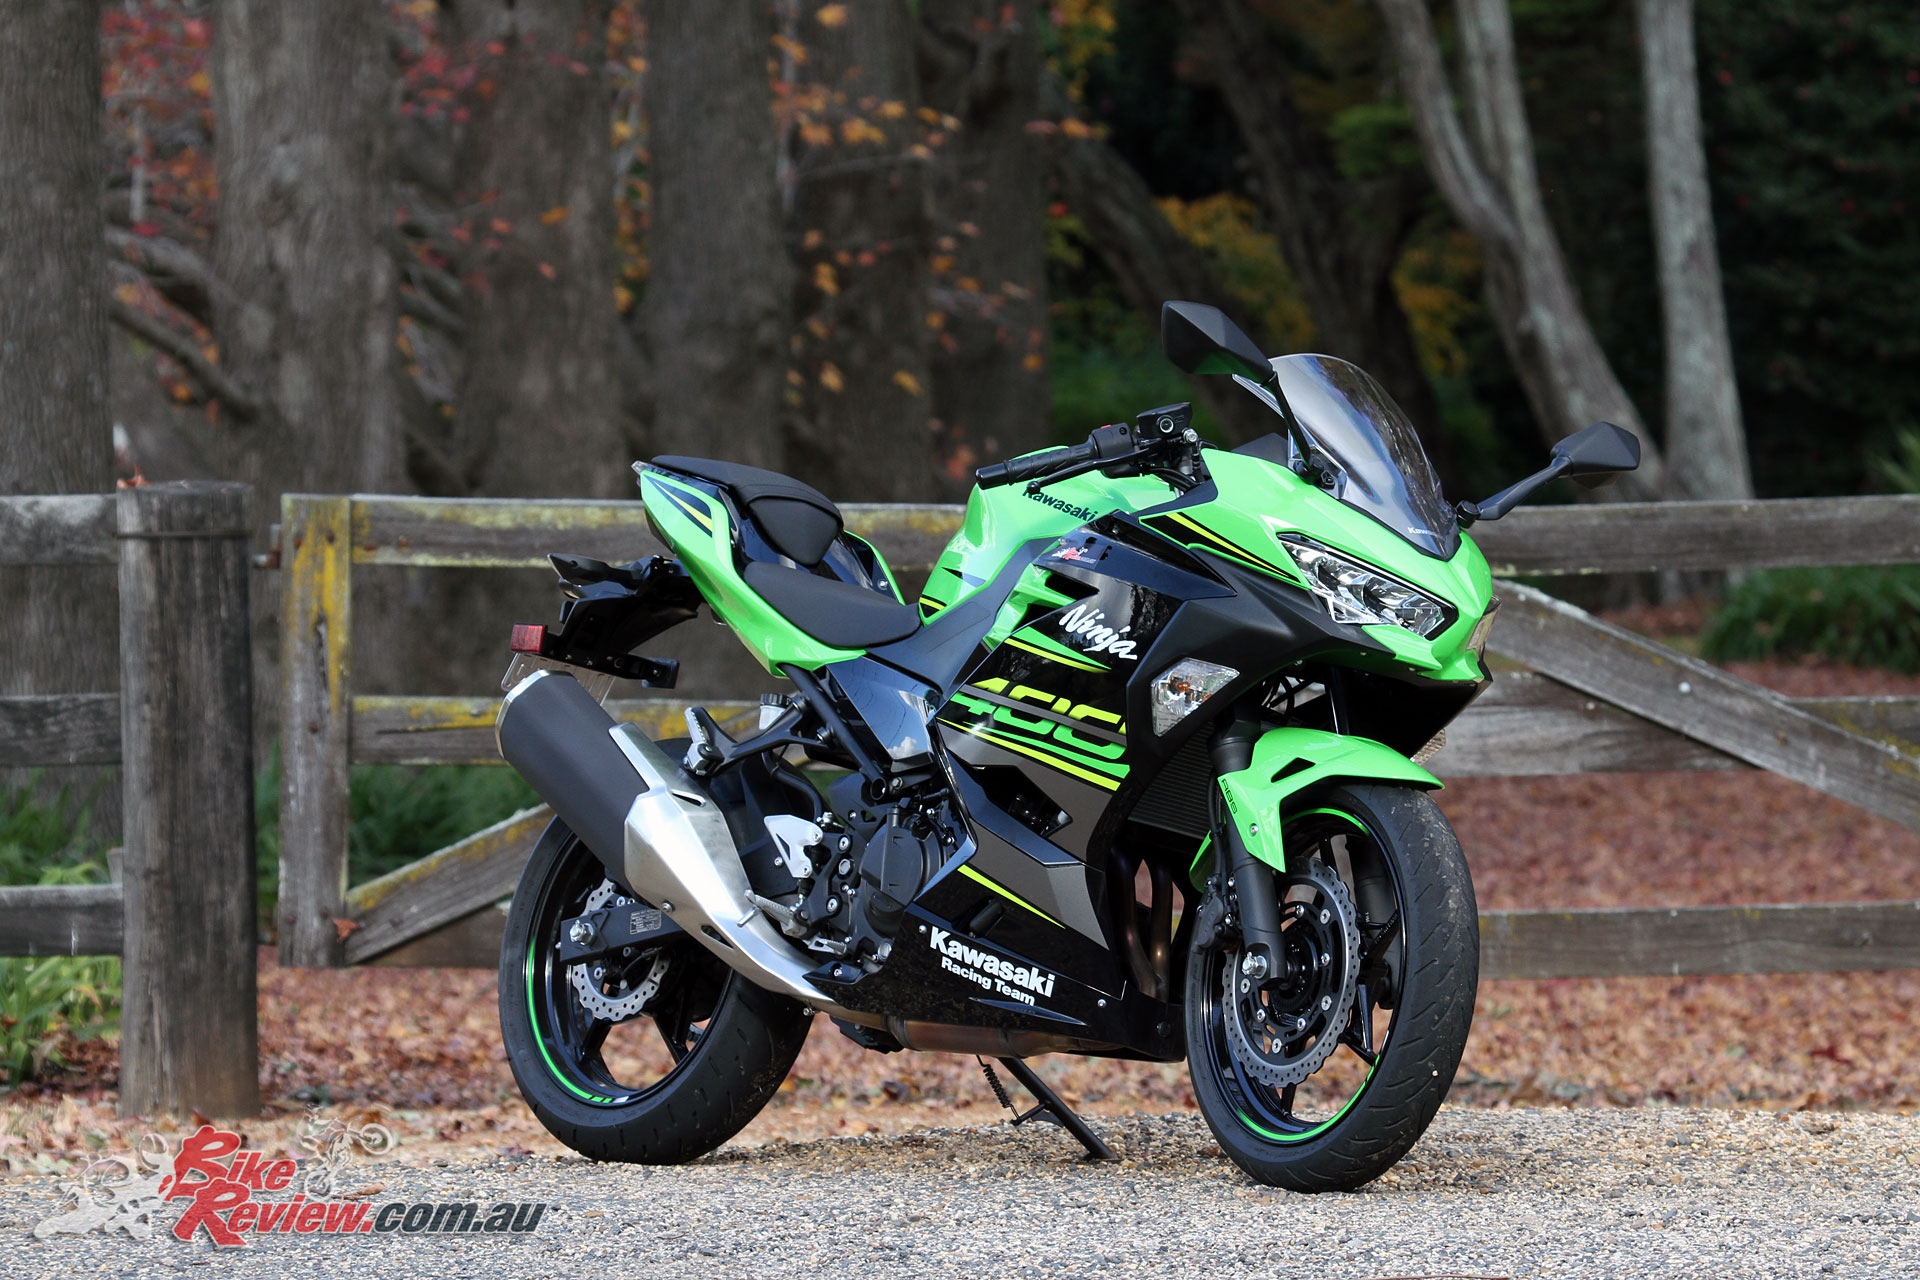 Kawasaki have taken the mid-capacity LAMS competition to the next level with the Ninja 400